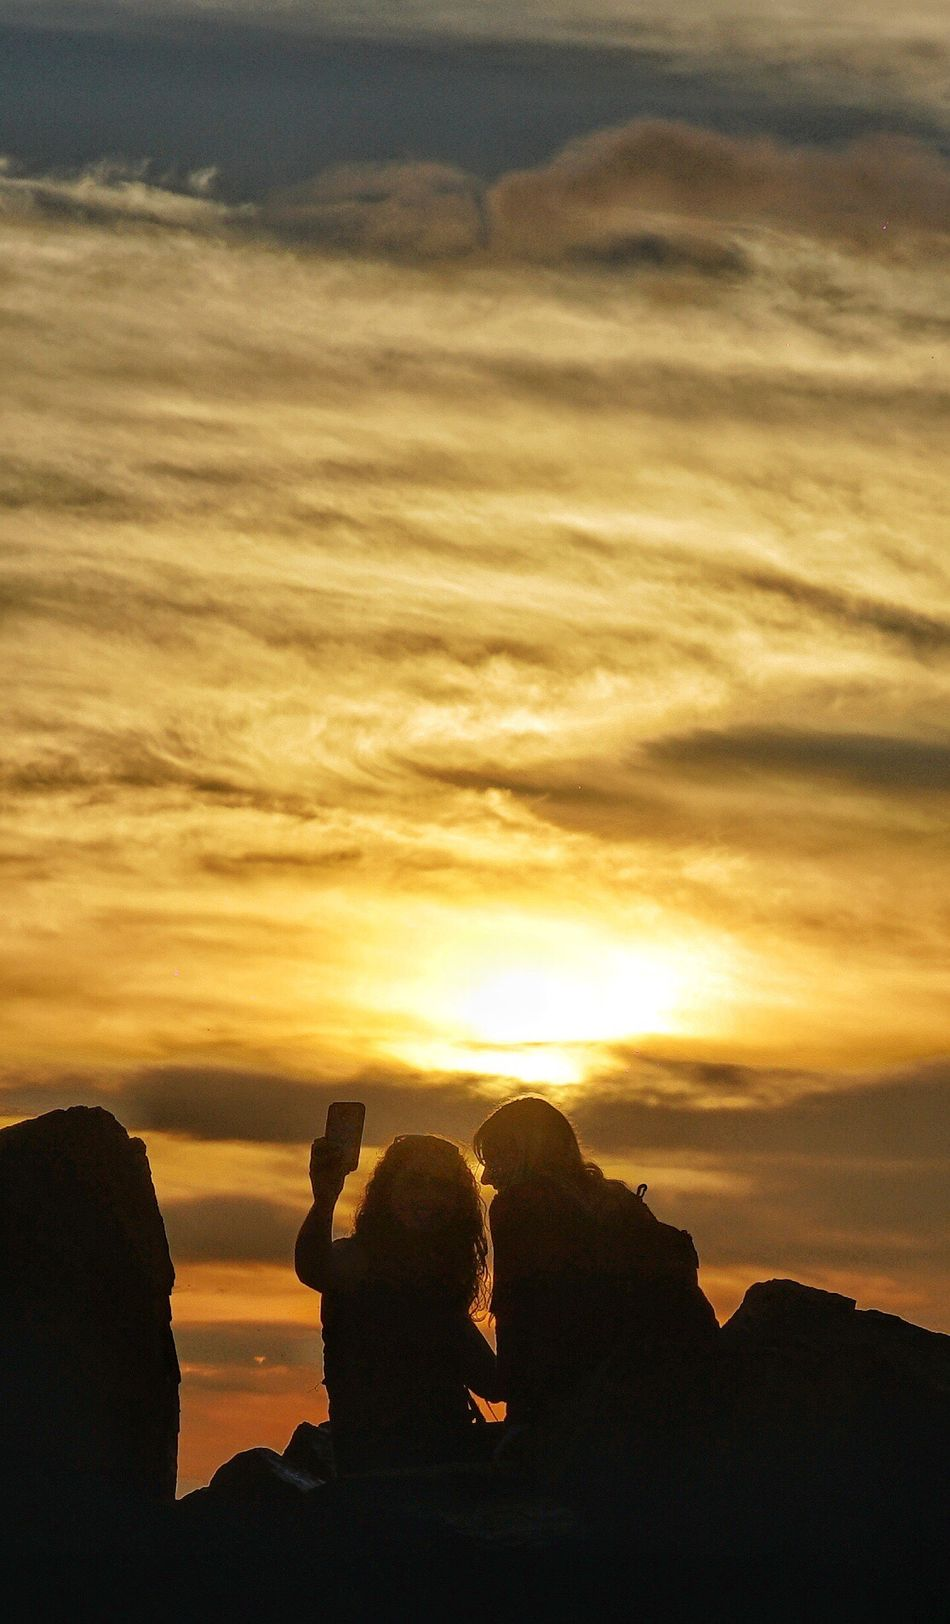 San Diego's sunset Sunset Silhouette Lifestyles Sky Real People Leisure Activity Beauty In Nature Men Cloud - Sky Scenics Nature Outdoors Women Bonding Friendship Togetherness People Human Body Part Adults Only Adult Canon 24-70 Sony A7RII Take